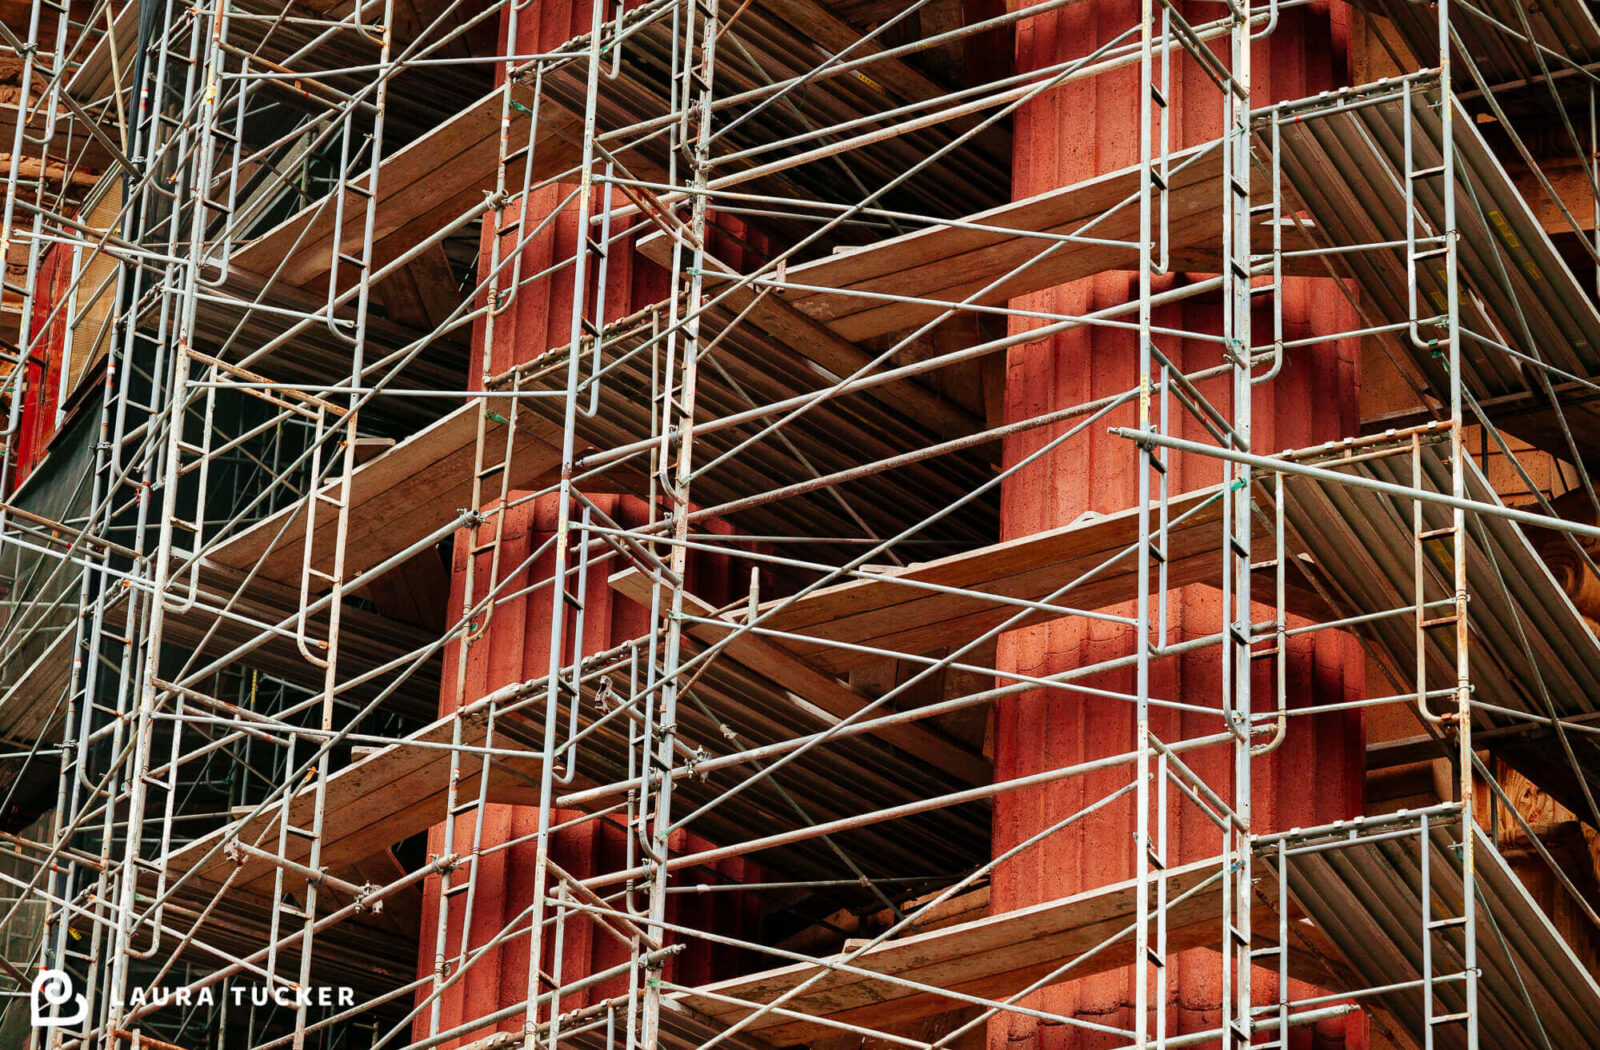 When Life Hands You Scaffolding